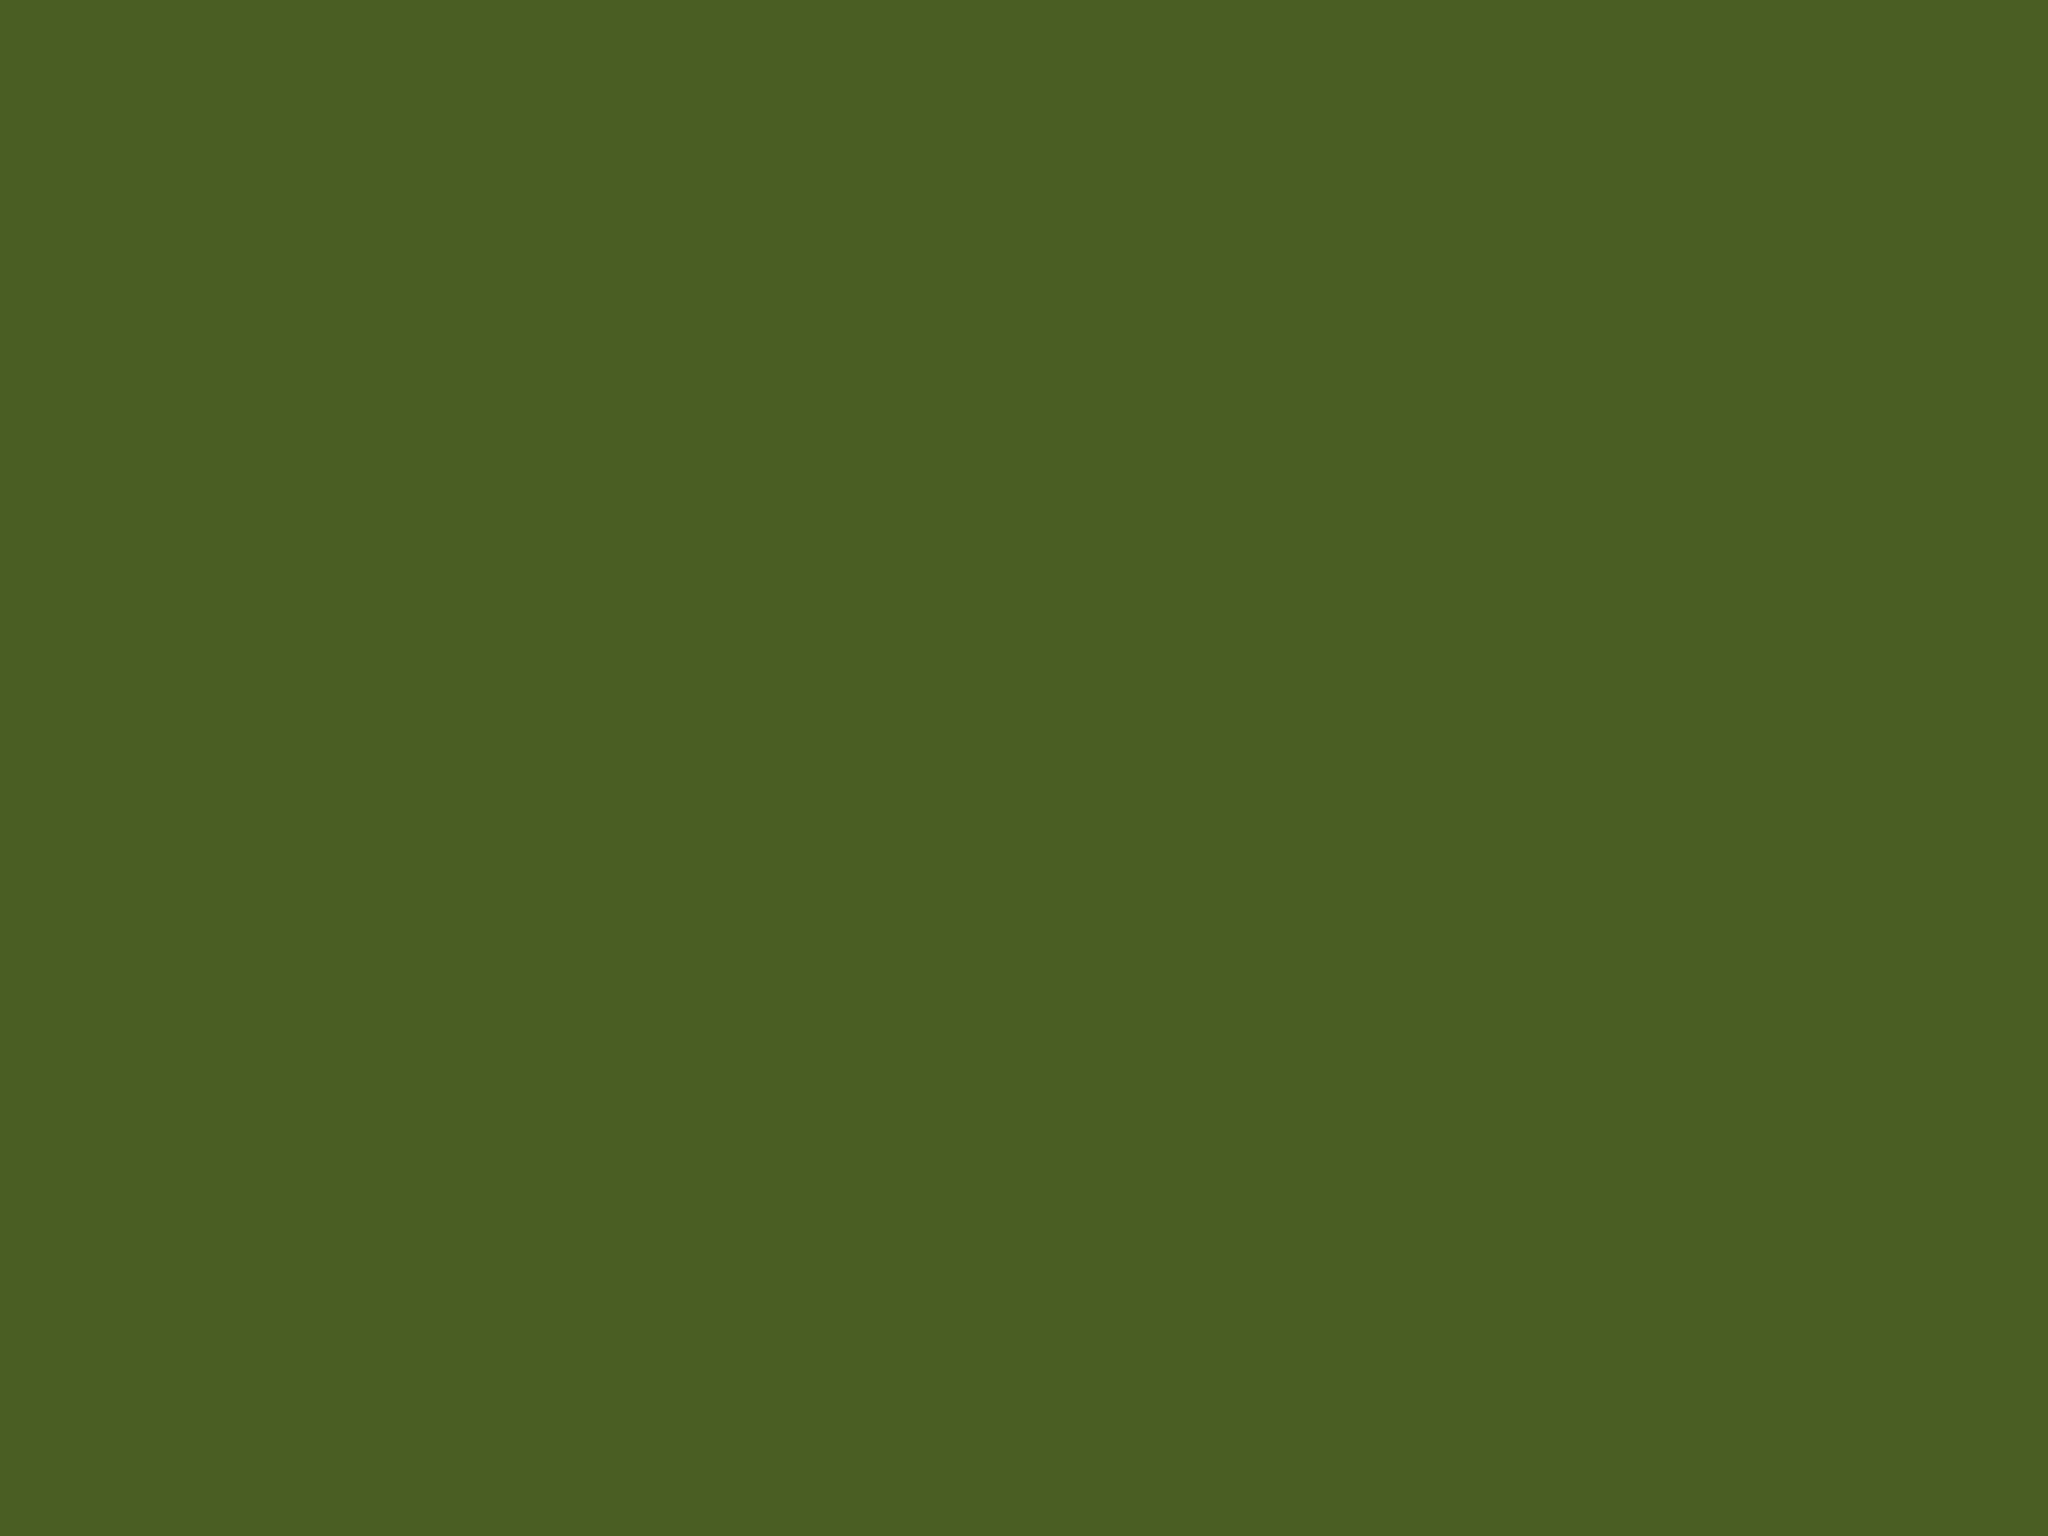 2048x1536 Dark Moss Green Solid Color Background